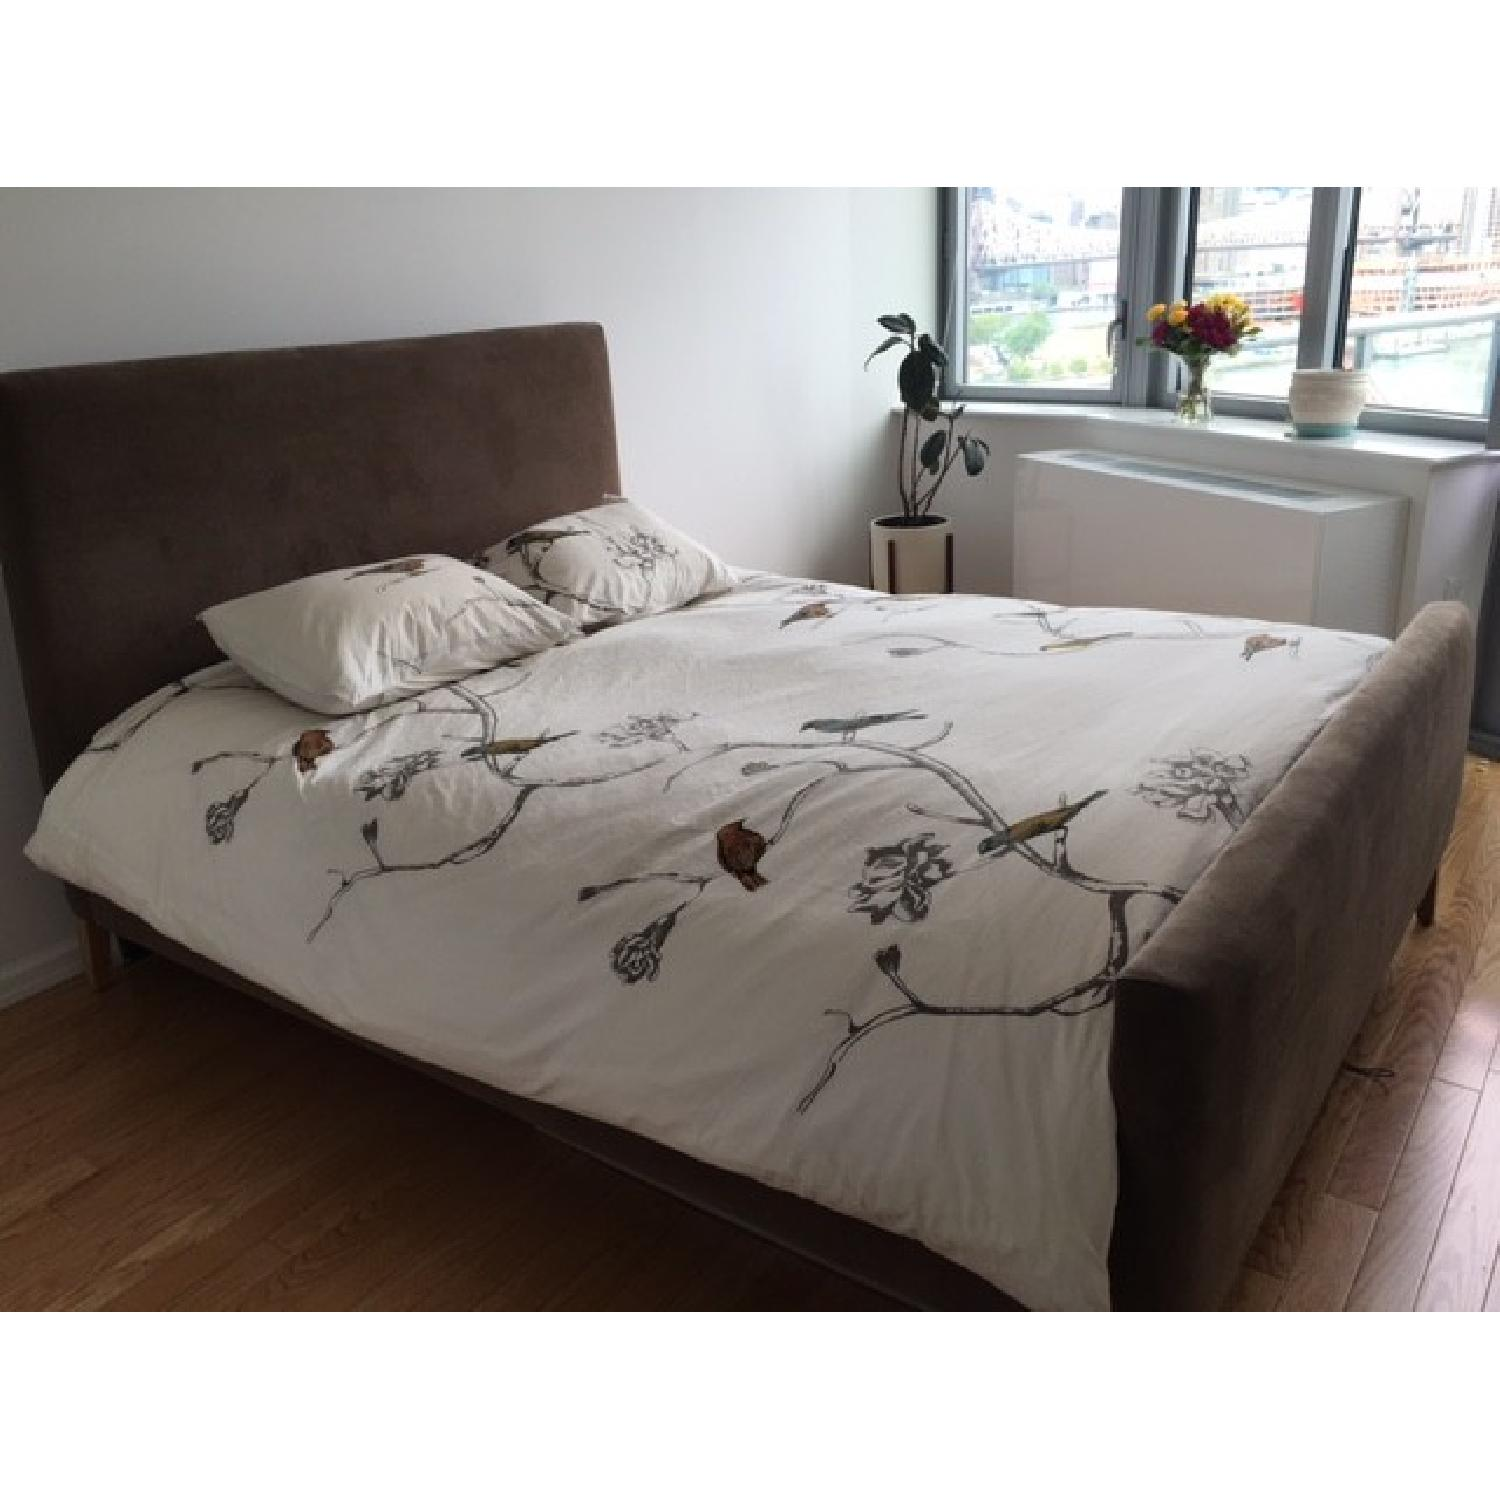 Room & Board Queen Size Bed Frame - image-1